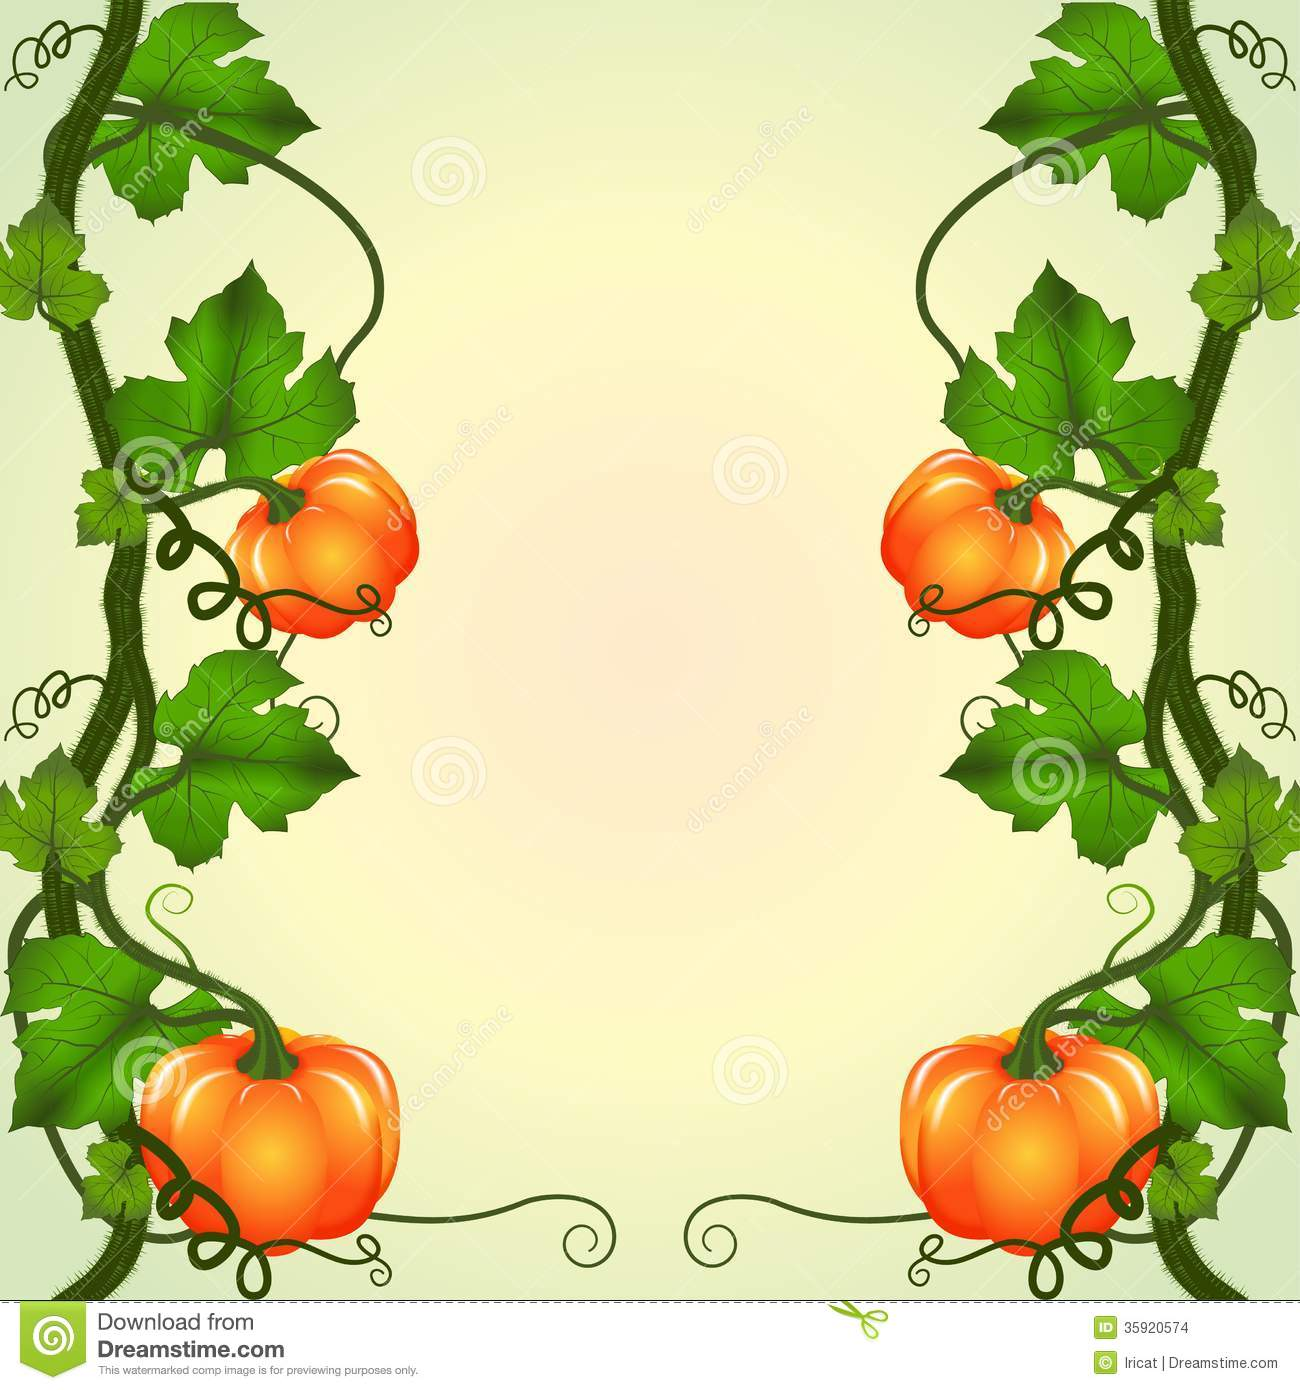 Pumpkin Vines Clipart Frame Of Pumpkins Stock Images